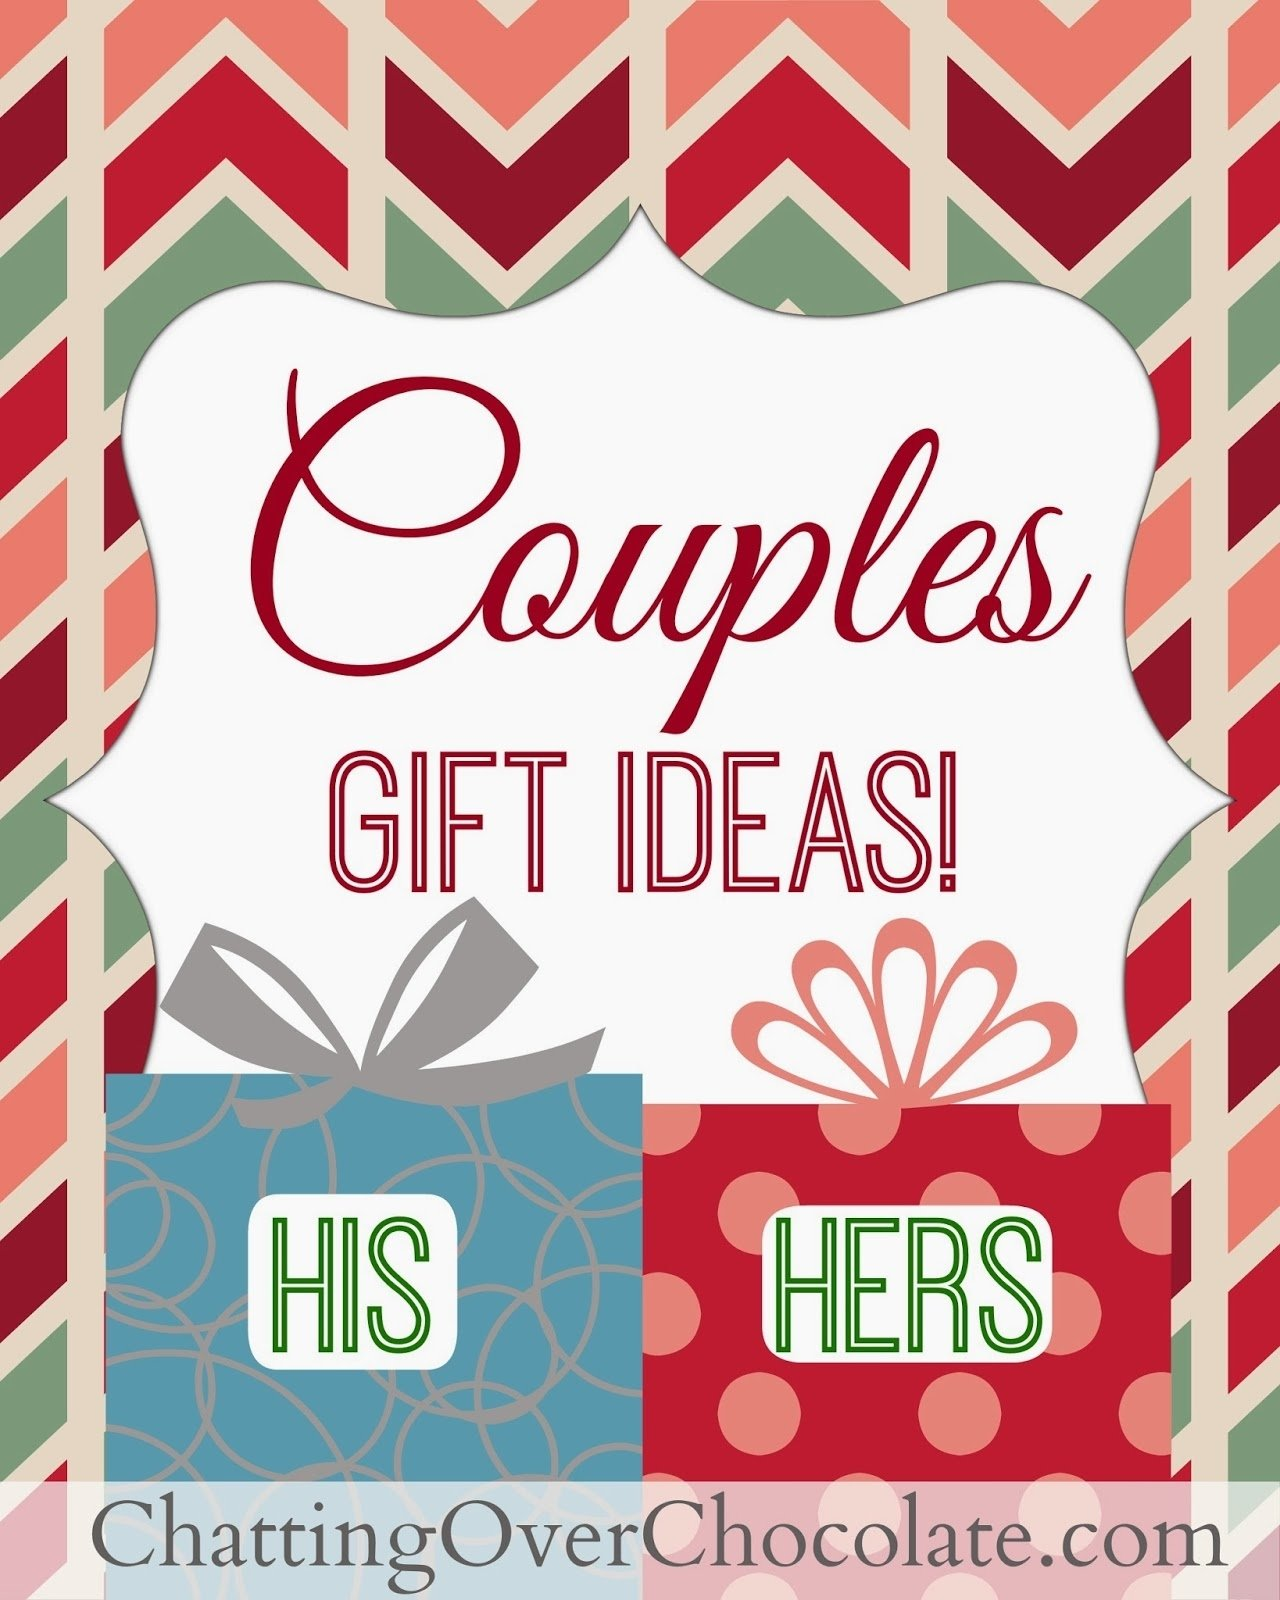 10 Beautiful Unique Christmas Gift Ideas For Couples chatting over chocolate his hers gift ideas couples gift giving 1 2021